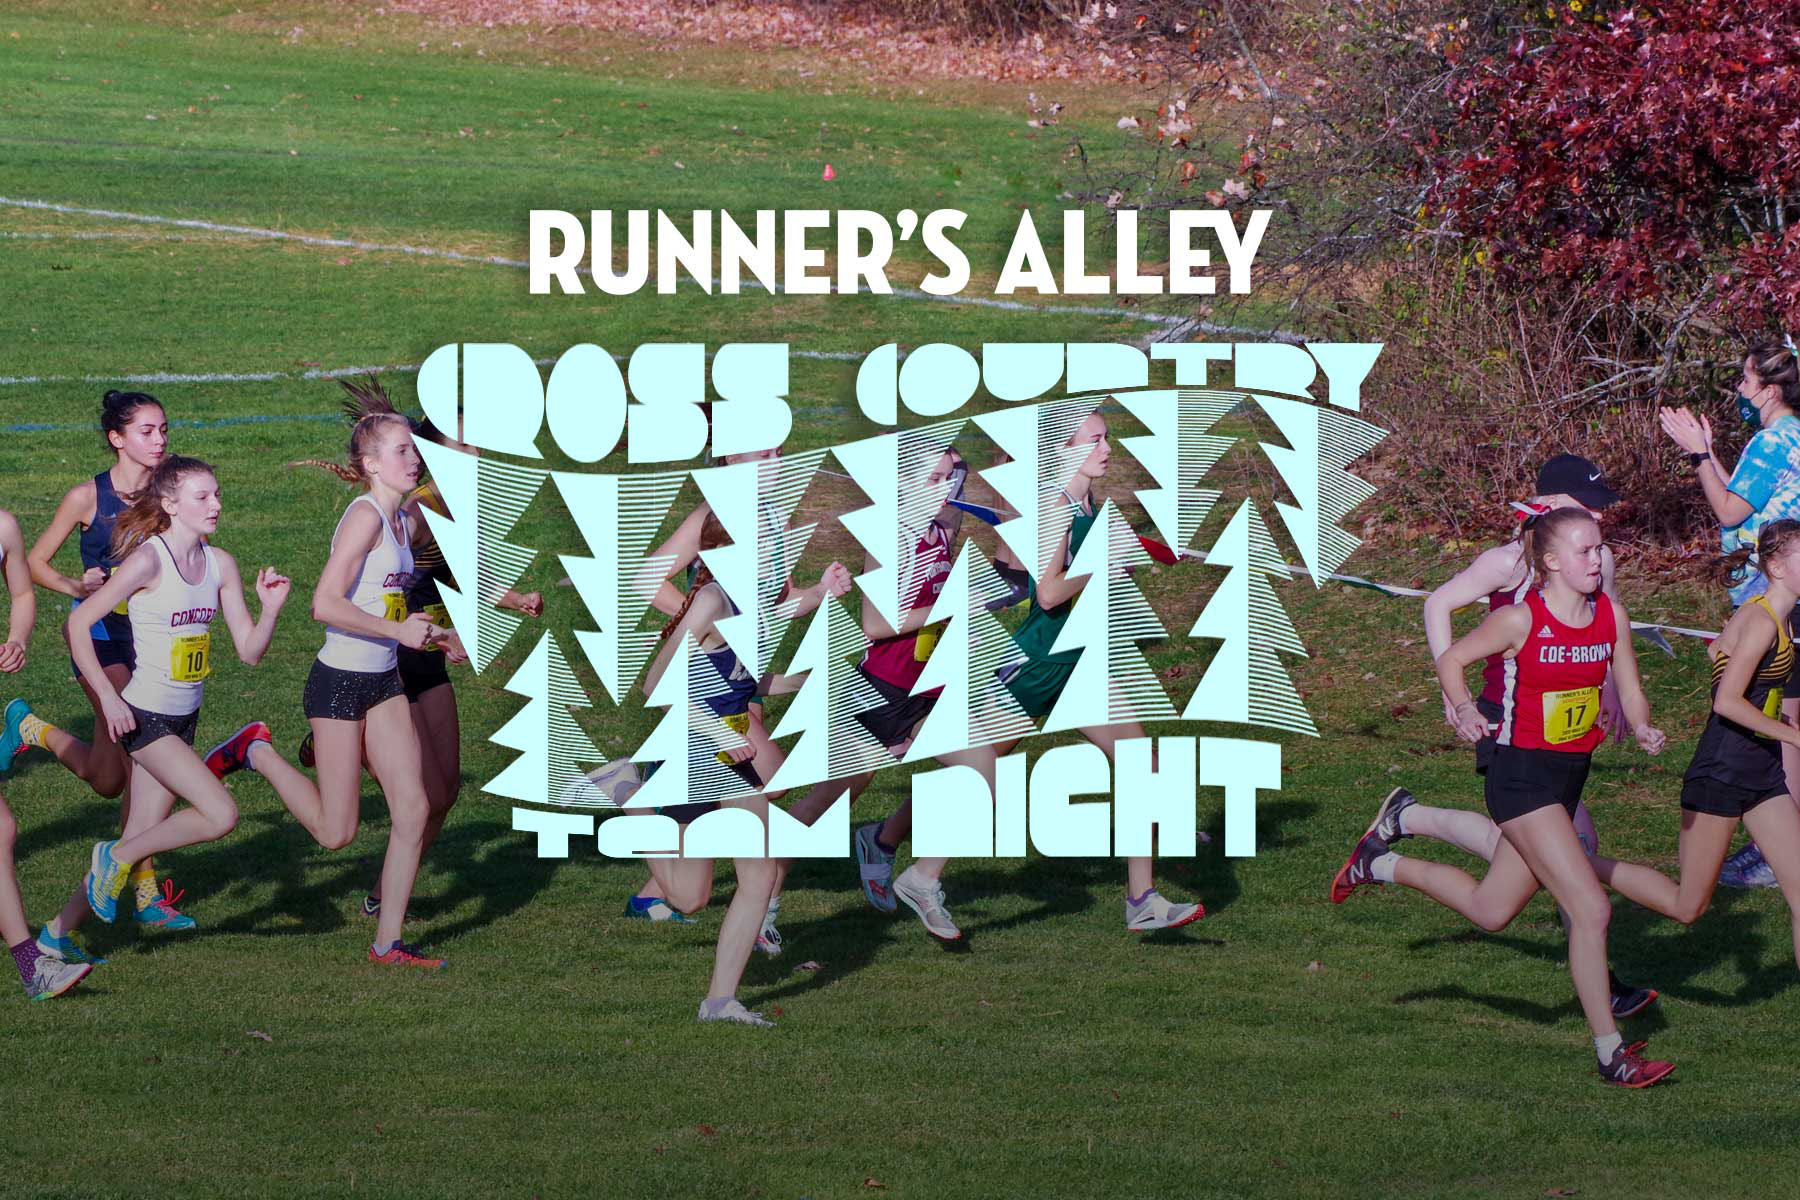 Schedule Your 2021 Runners Alley Team Night!